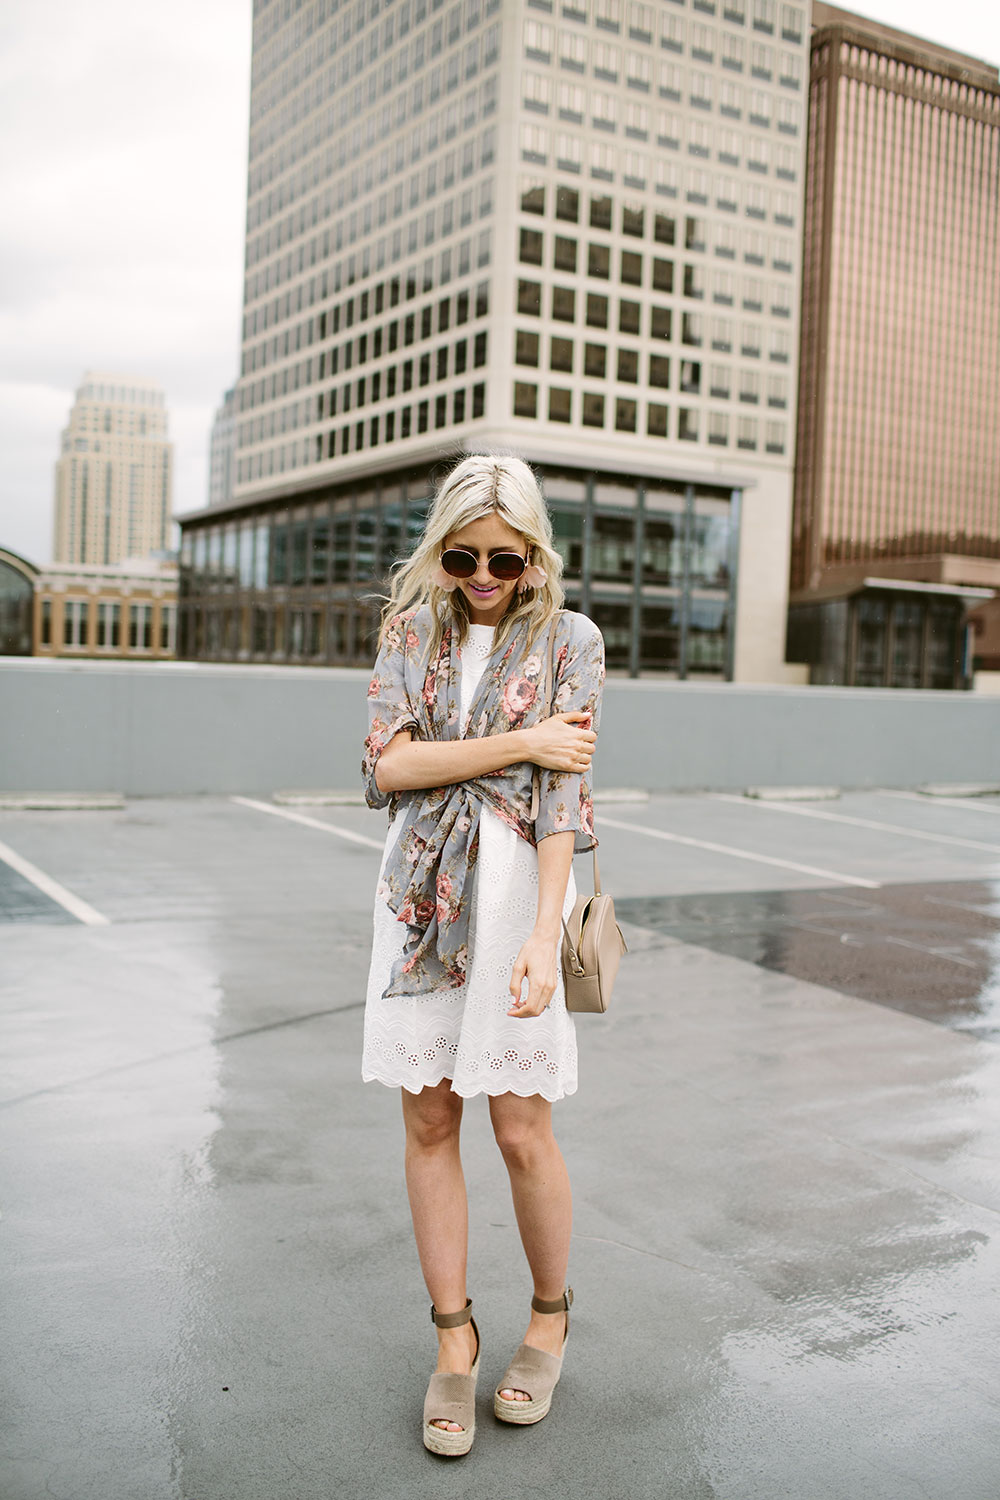 White lace eyelet dress with sheer floral kimono for spring and summer fashion | Little Miss Fearless